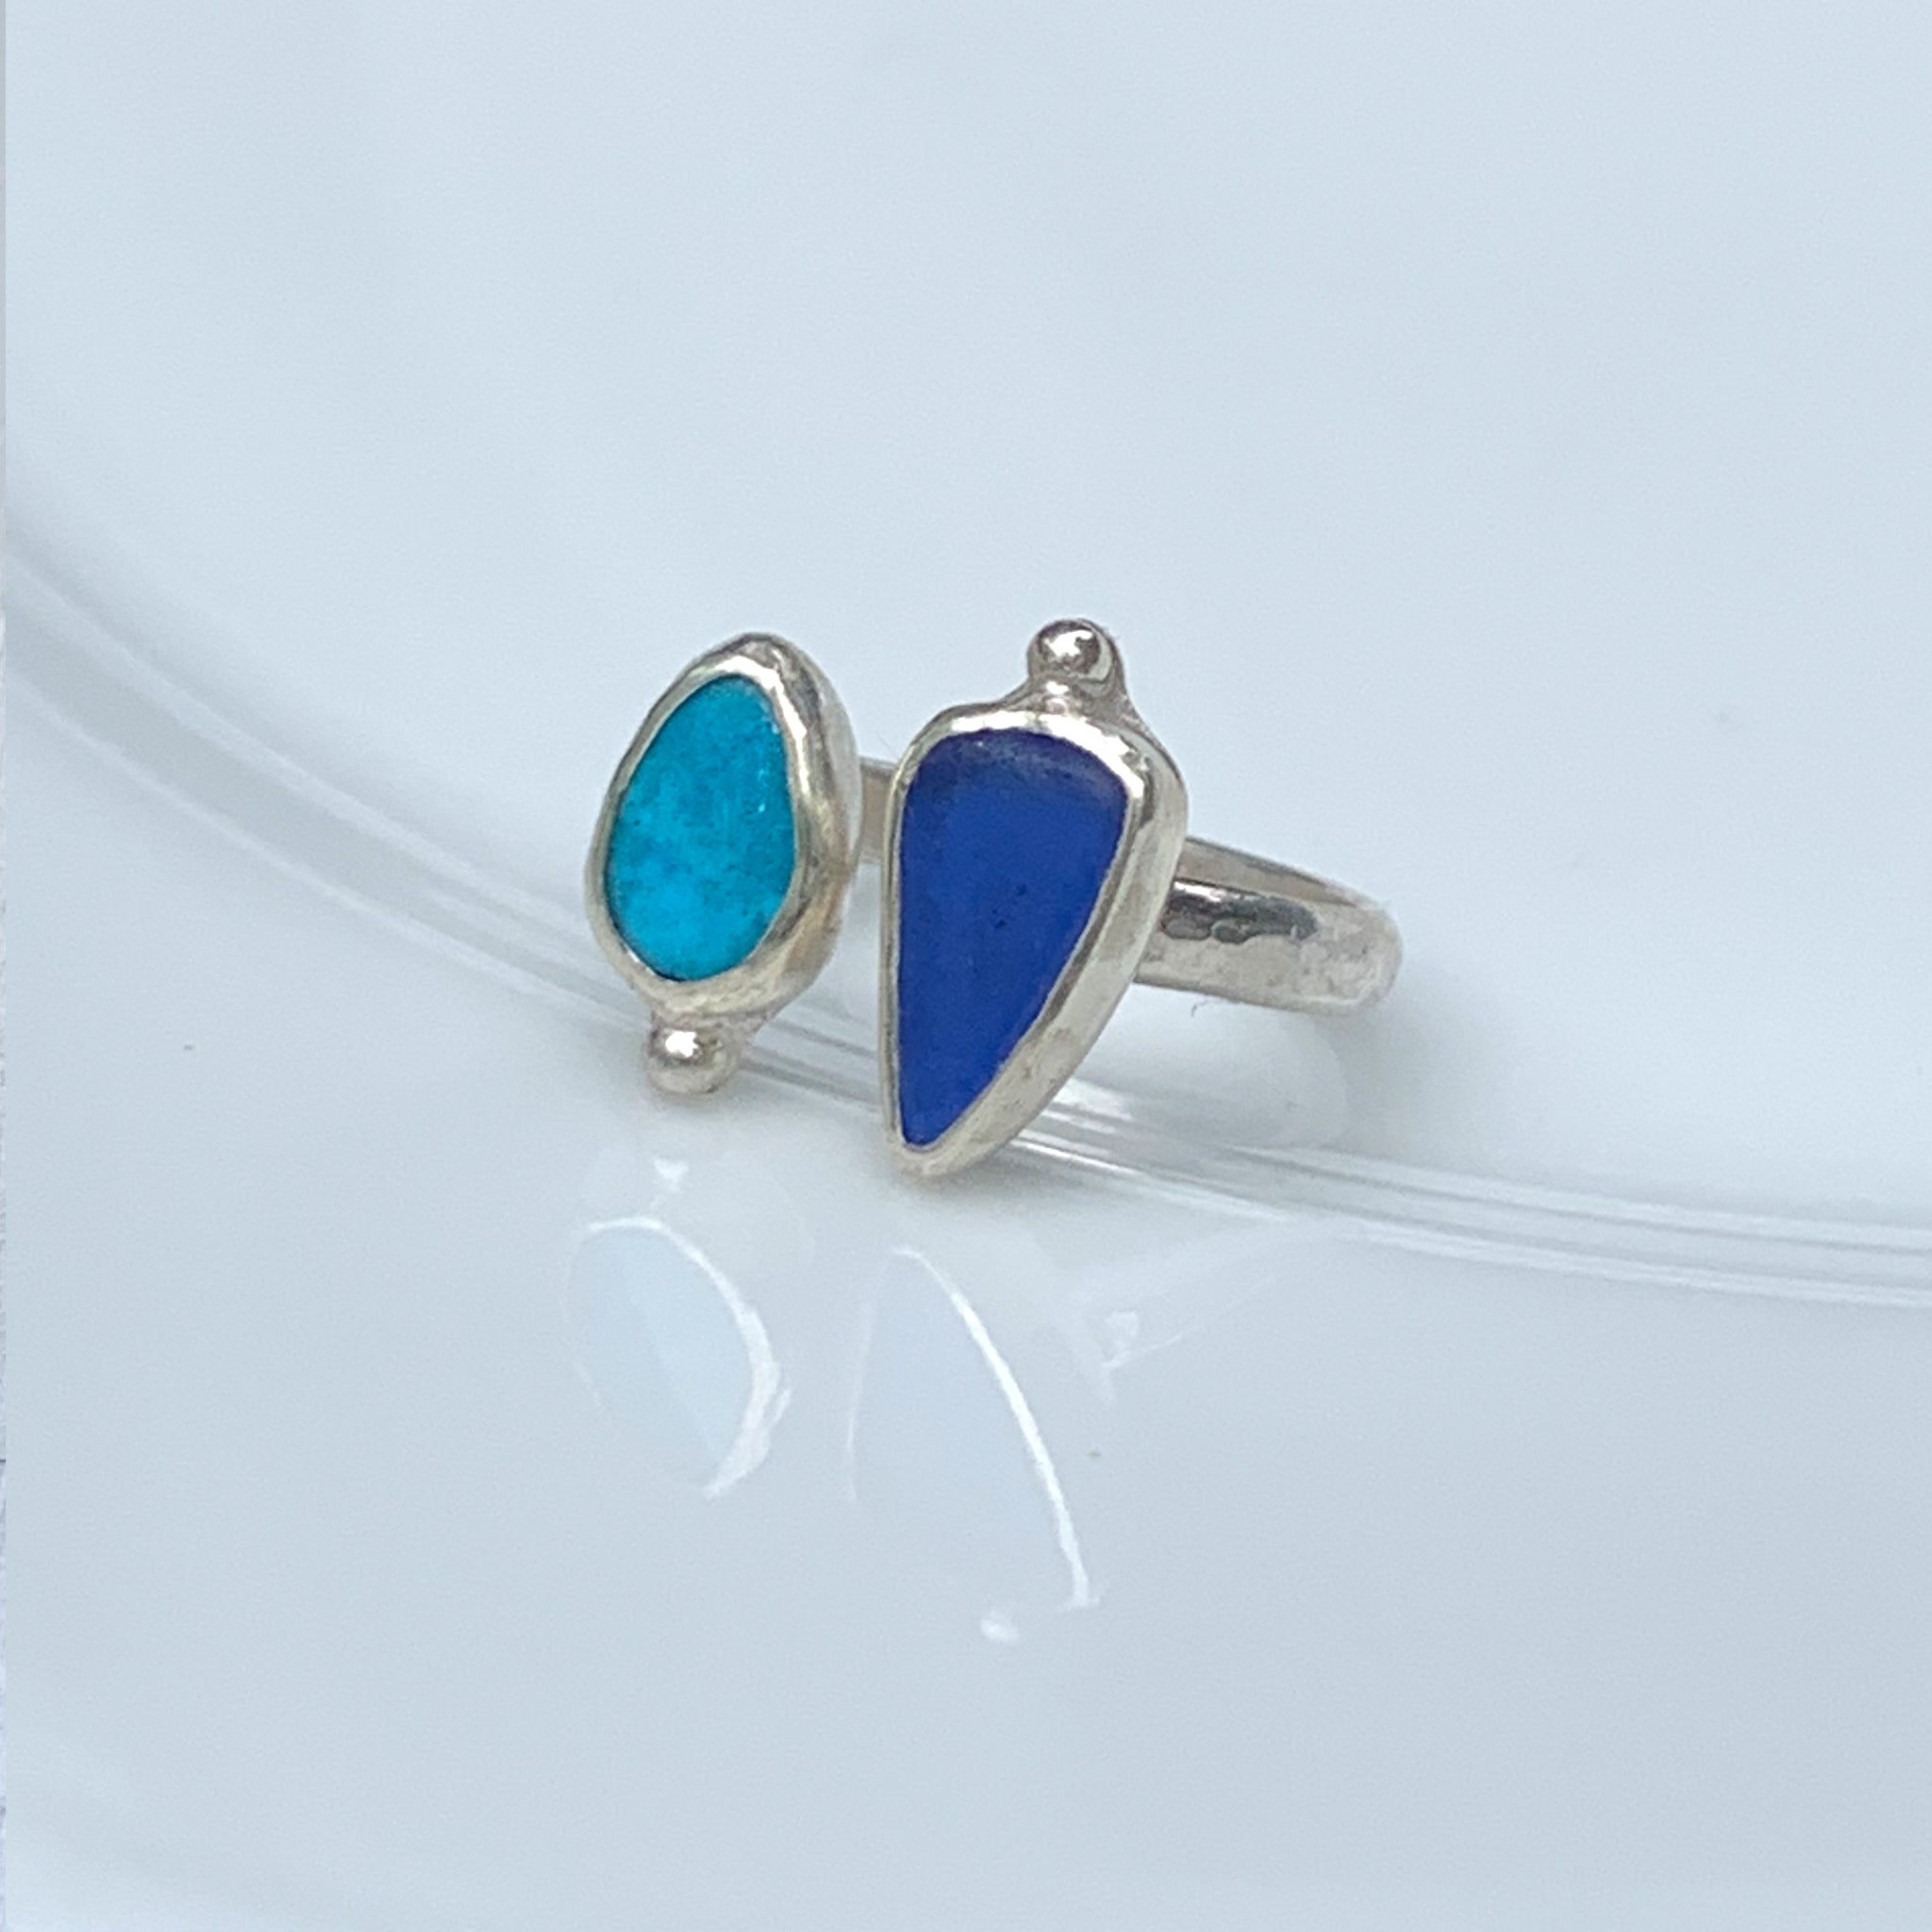 Two Treasures Ring with Turquoise + Seaglass Size 7 1/2